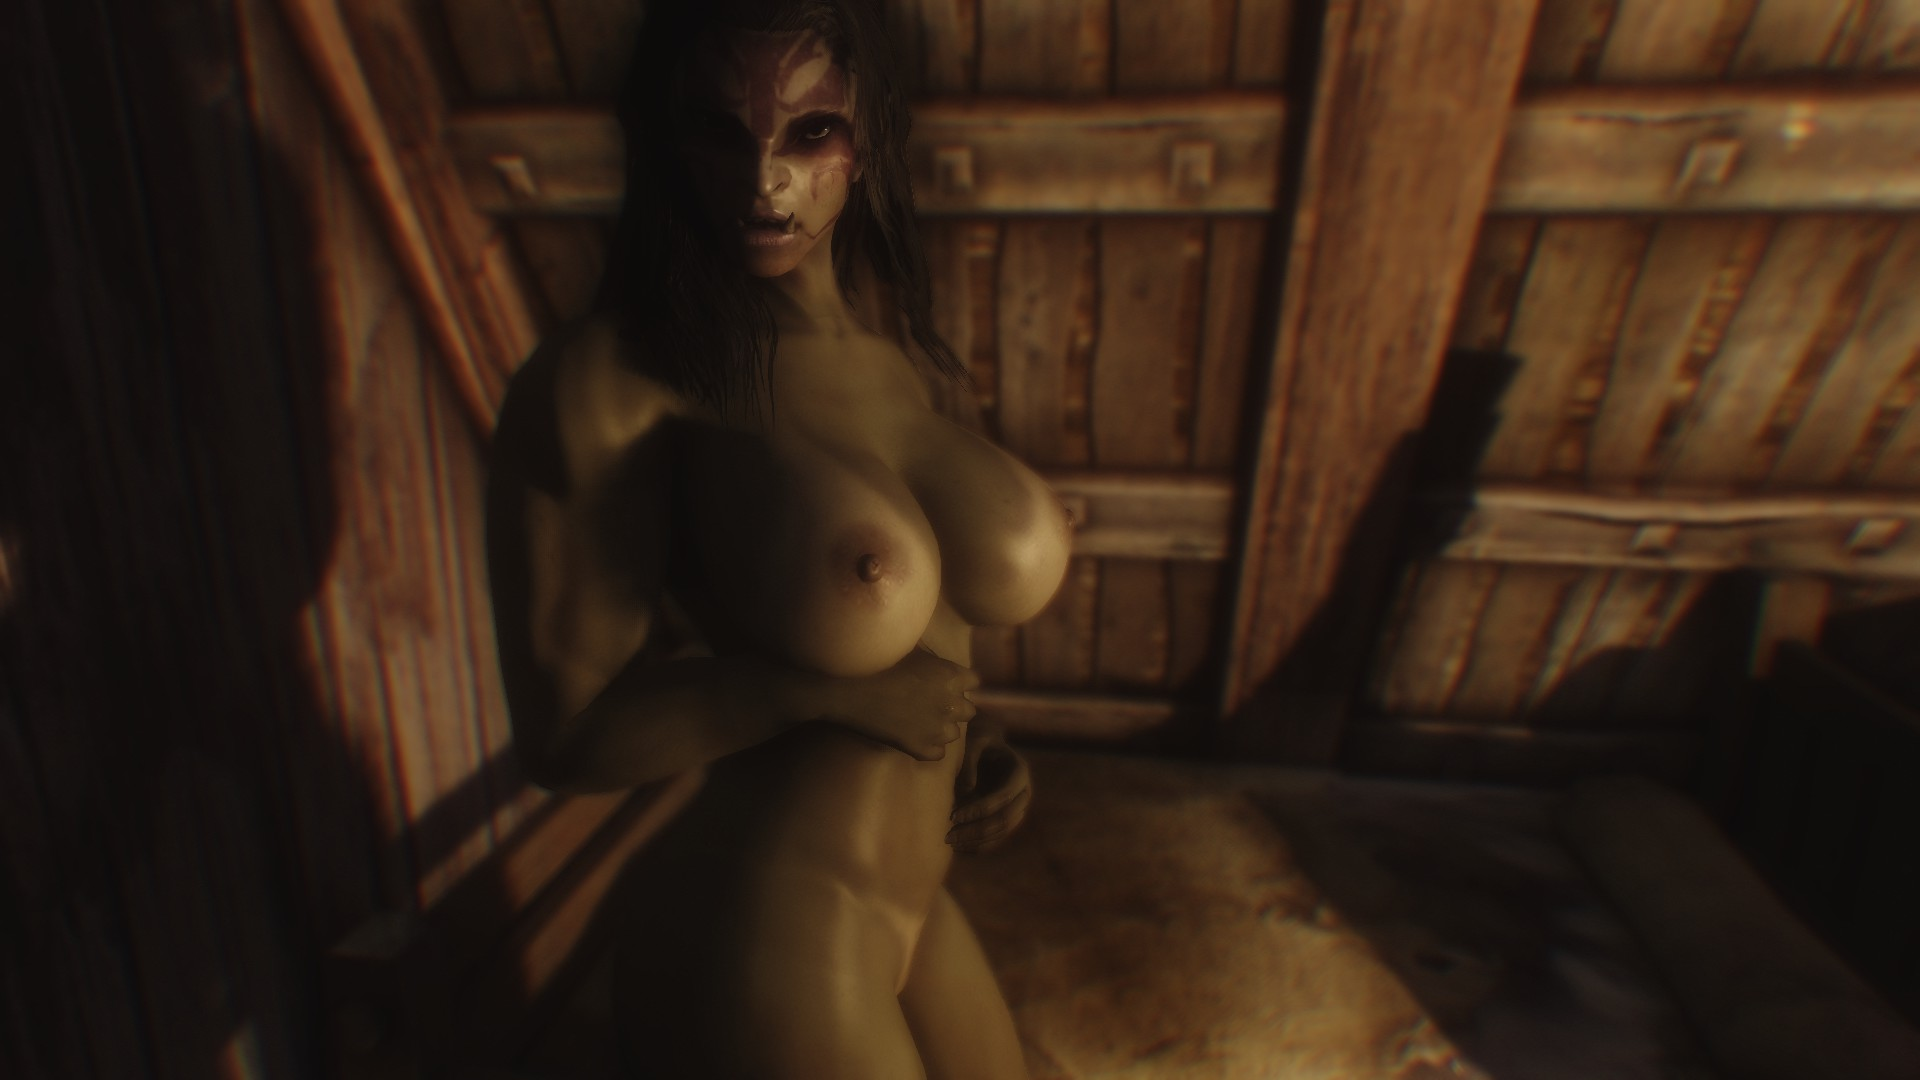 Anime skyrim porn games sexy orc girls  adult tube